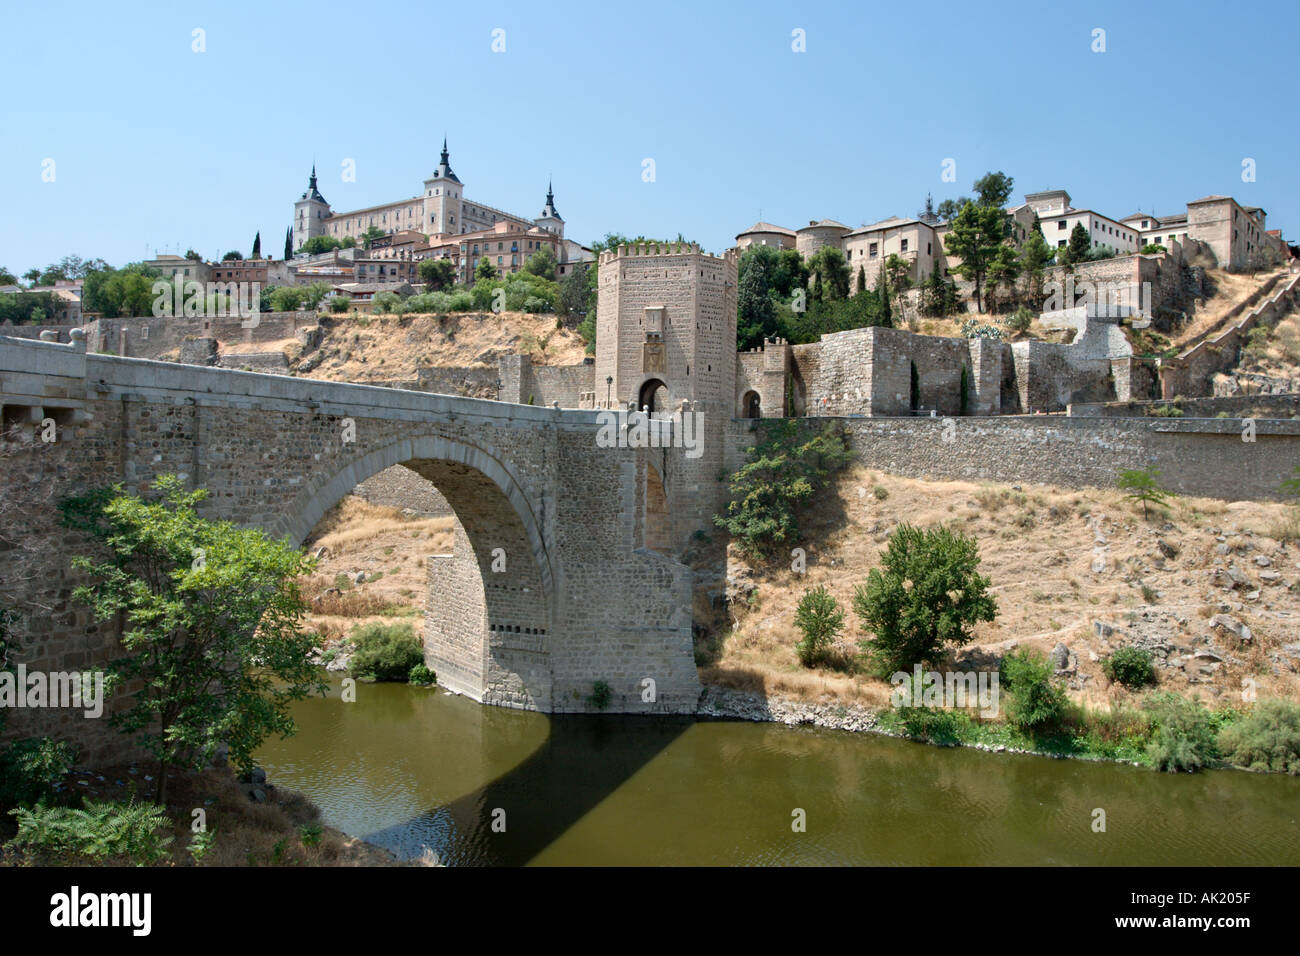 The Puerta de Alcantara on a bridge over the River Tagus with the Alcazar behind, Toledo, Castilla-La-Mancha, Spain - Stock Image